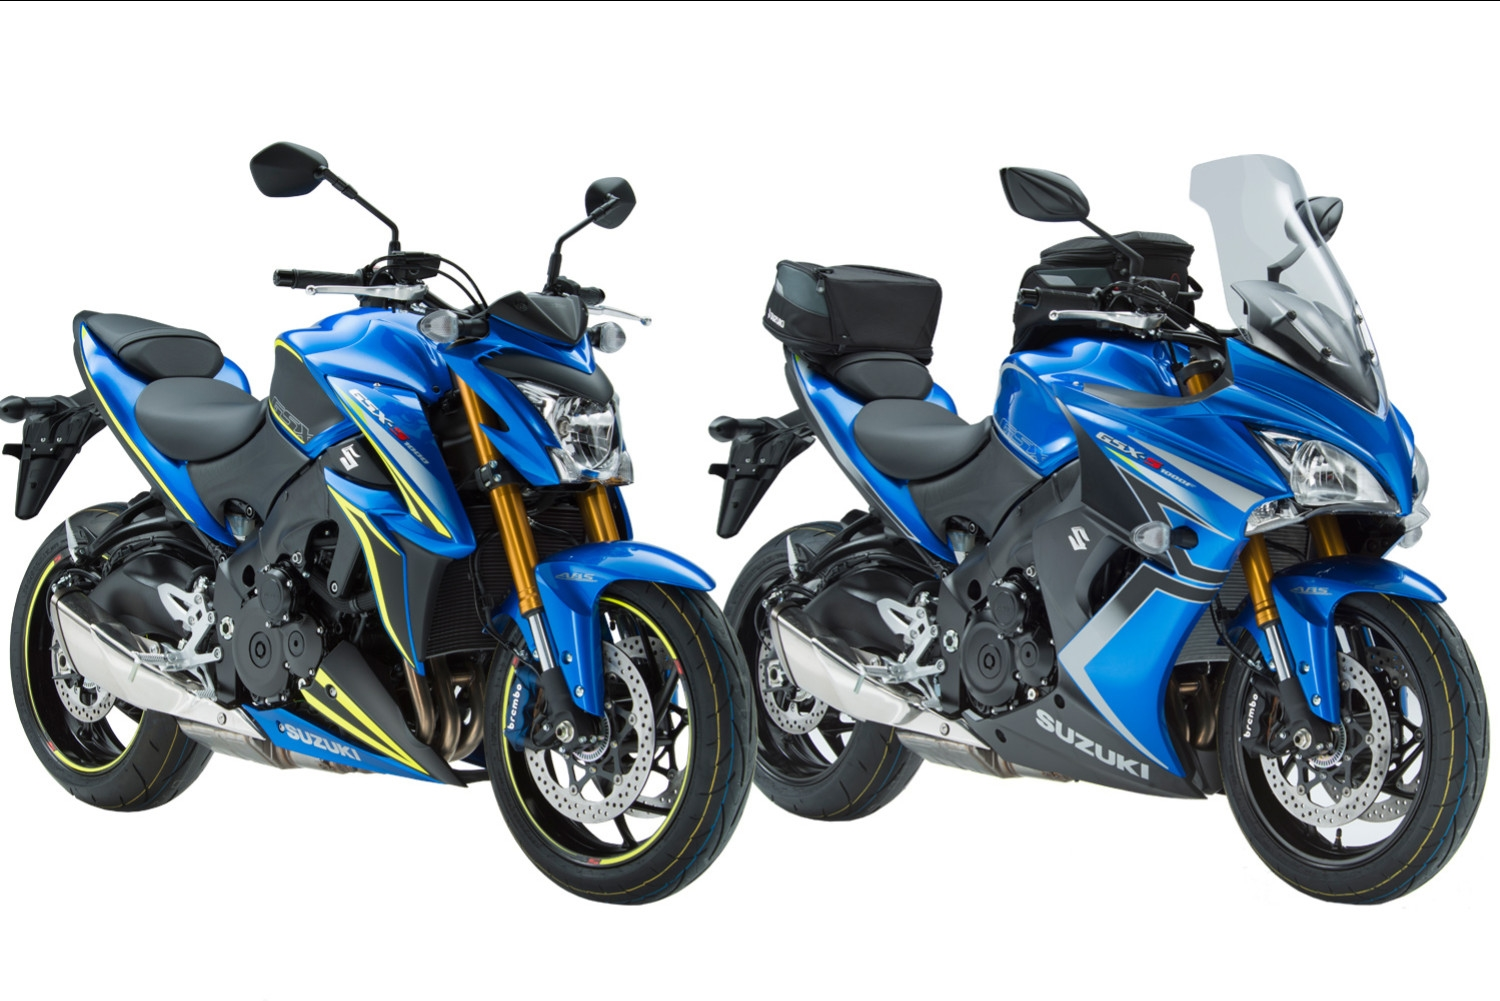 suzuki announces special edition gsx s1000 a and gsx. Black Bedroom Furniture Sets. Home Design Ideas